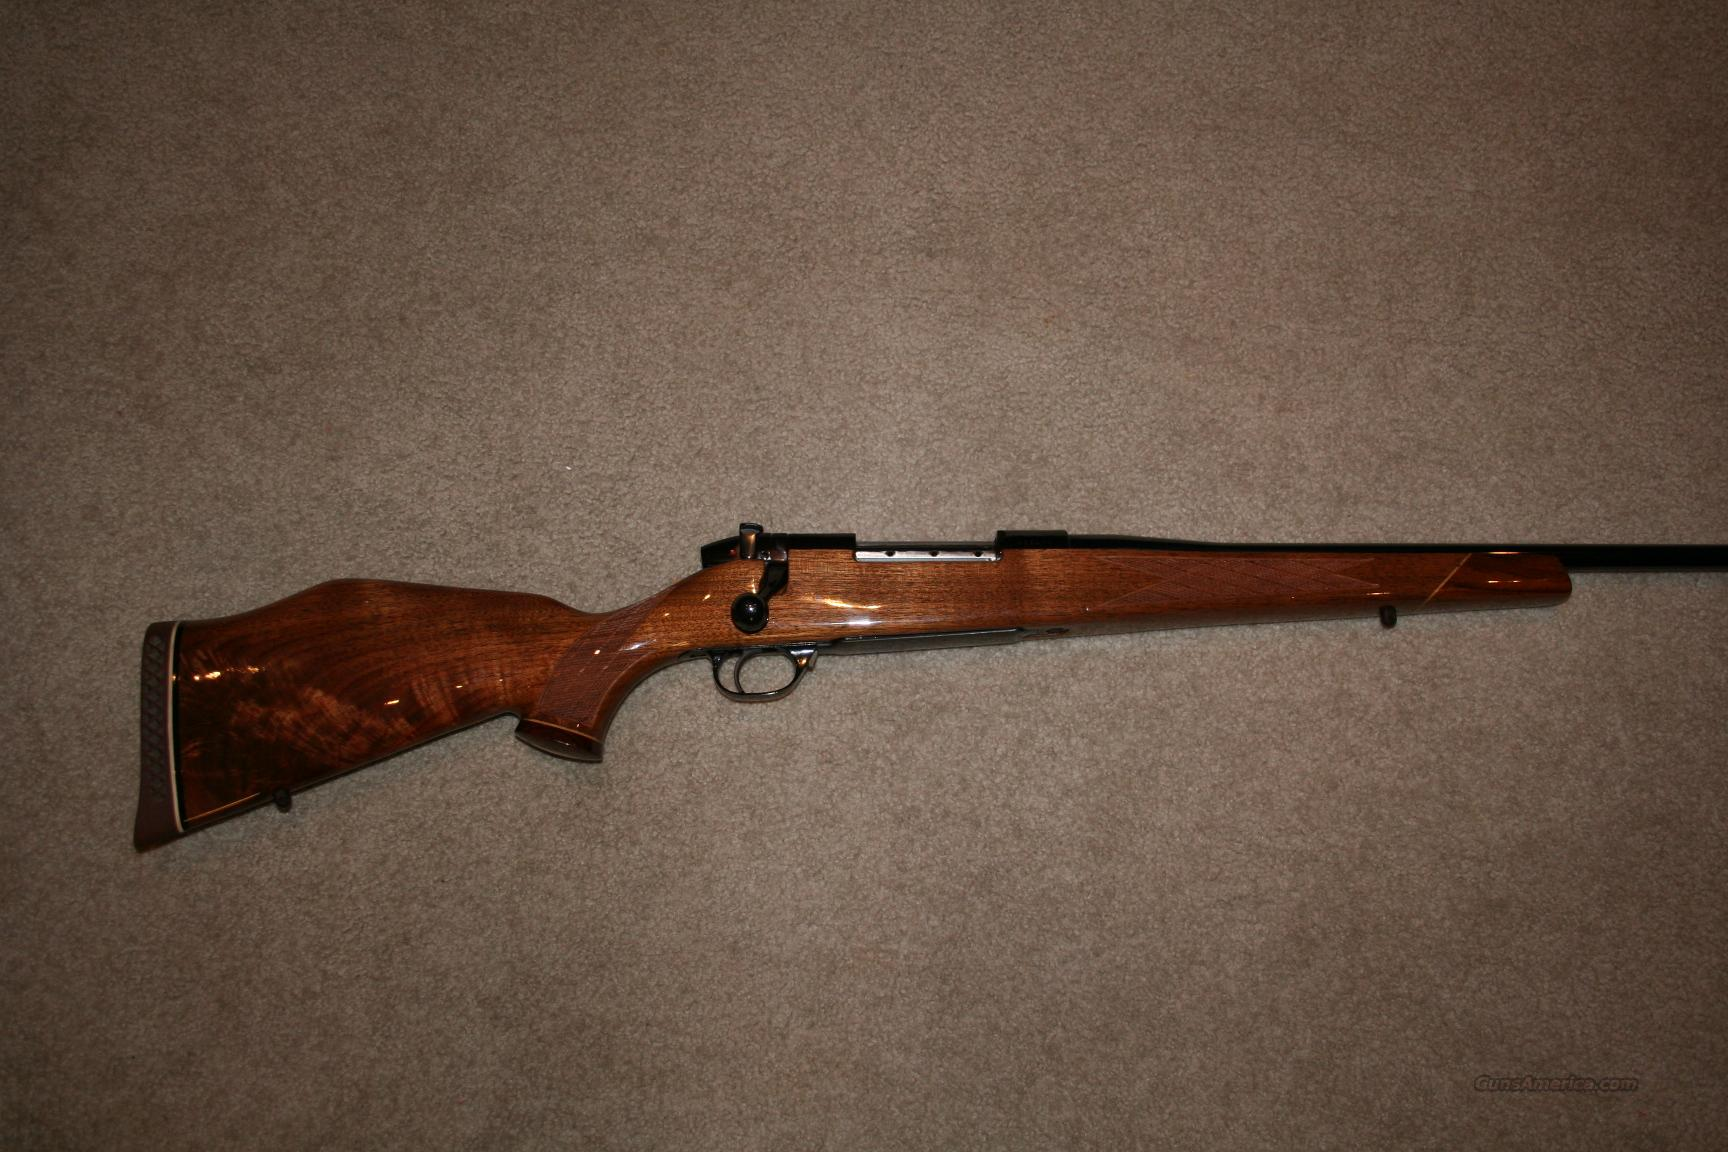 WEATHERBY DELUXE 240 WBY. MAG. JAPAN  Guns > Rifles > Weatherby Rifles > Sporting